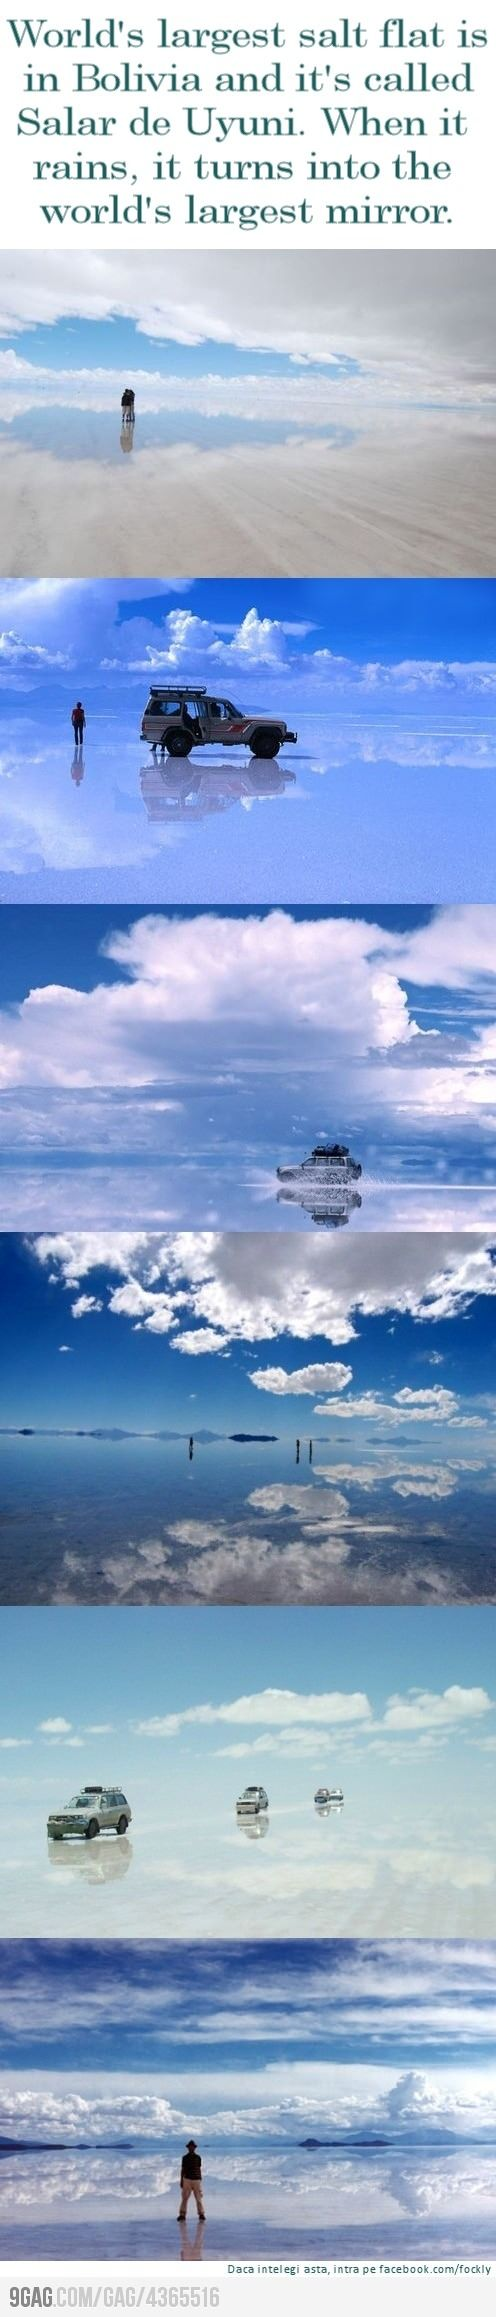 Border between heaven and Earth. I will visit here.: Bucket List, Largest Mirror, The Salar De Uyuni, Worlds Largest, Amazing Place, Places I Ll, Uyuni Bolivia